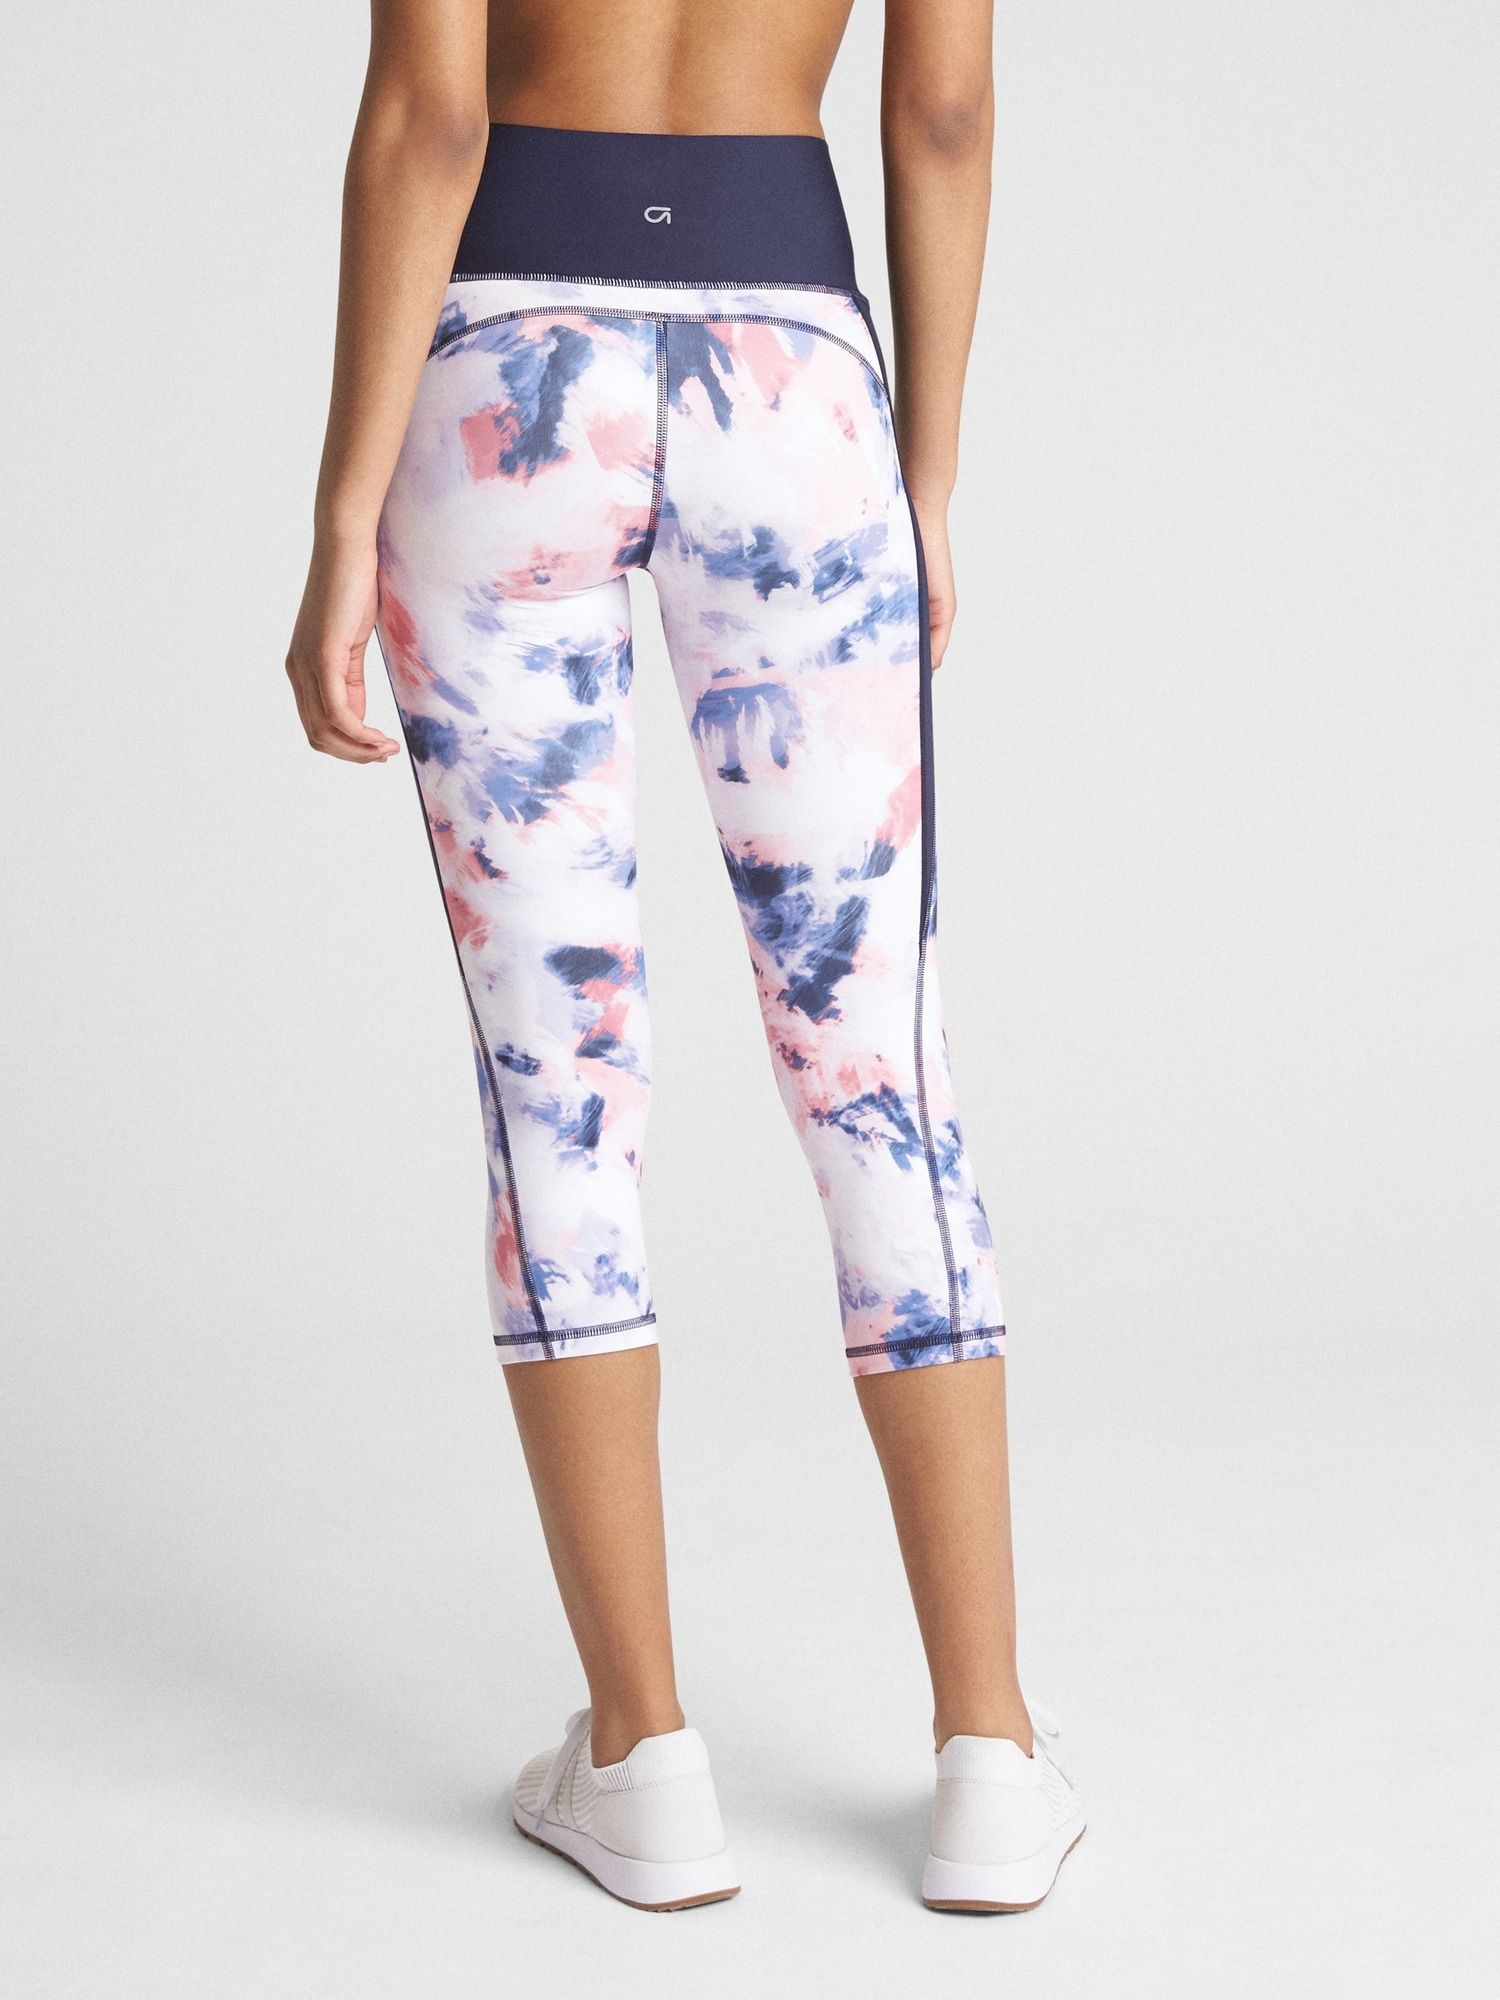 838bf2630a Gap Fit, GFast High Rise Capris in Sculpt Compression, in Abstract Paint  Pink, $70